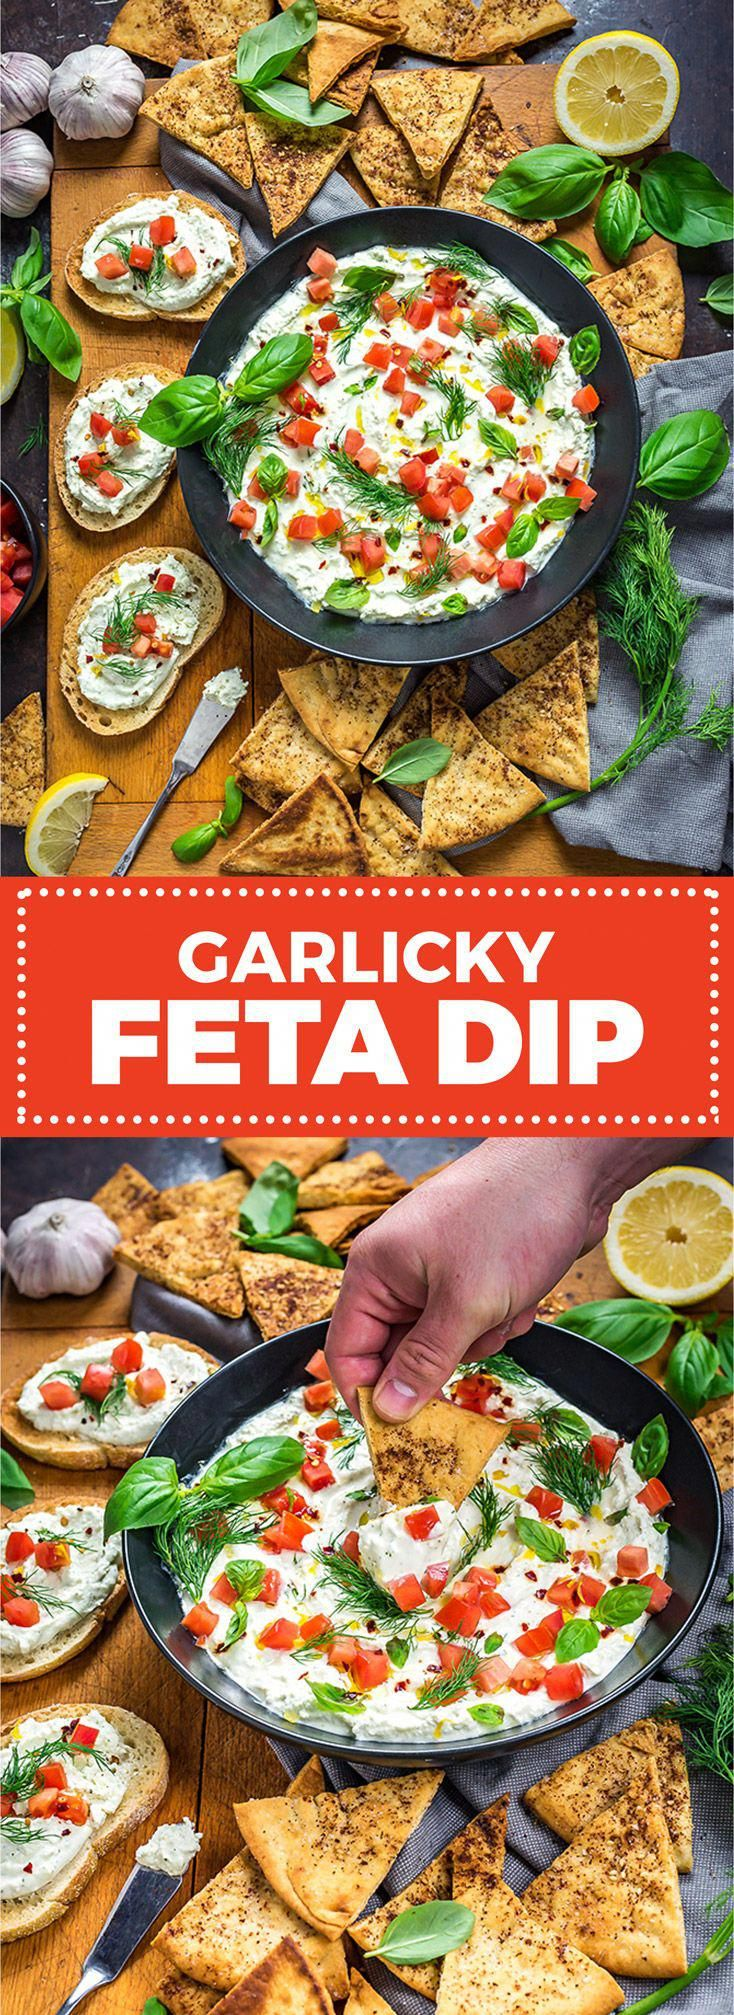 This simple, creamy dip is tangy, garlicky, and always a crowd-pleaser. #appetiz…